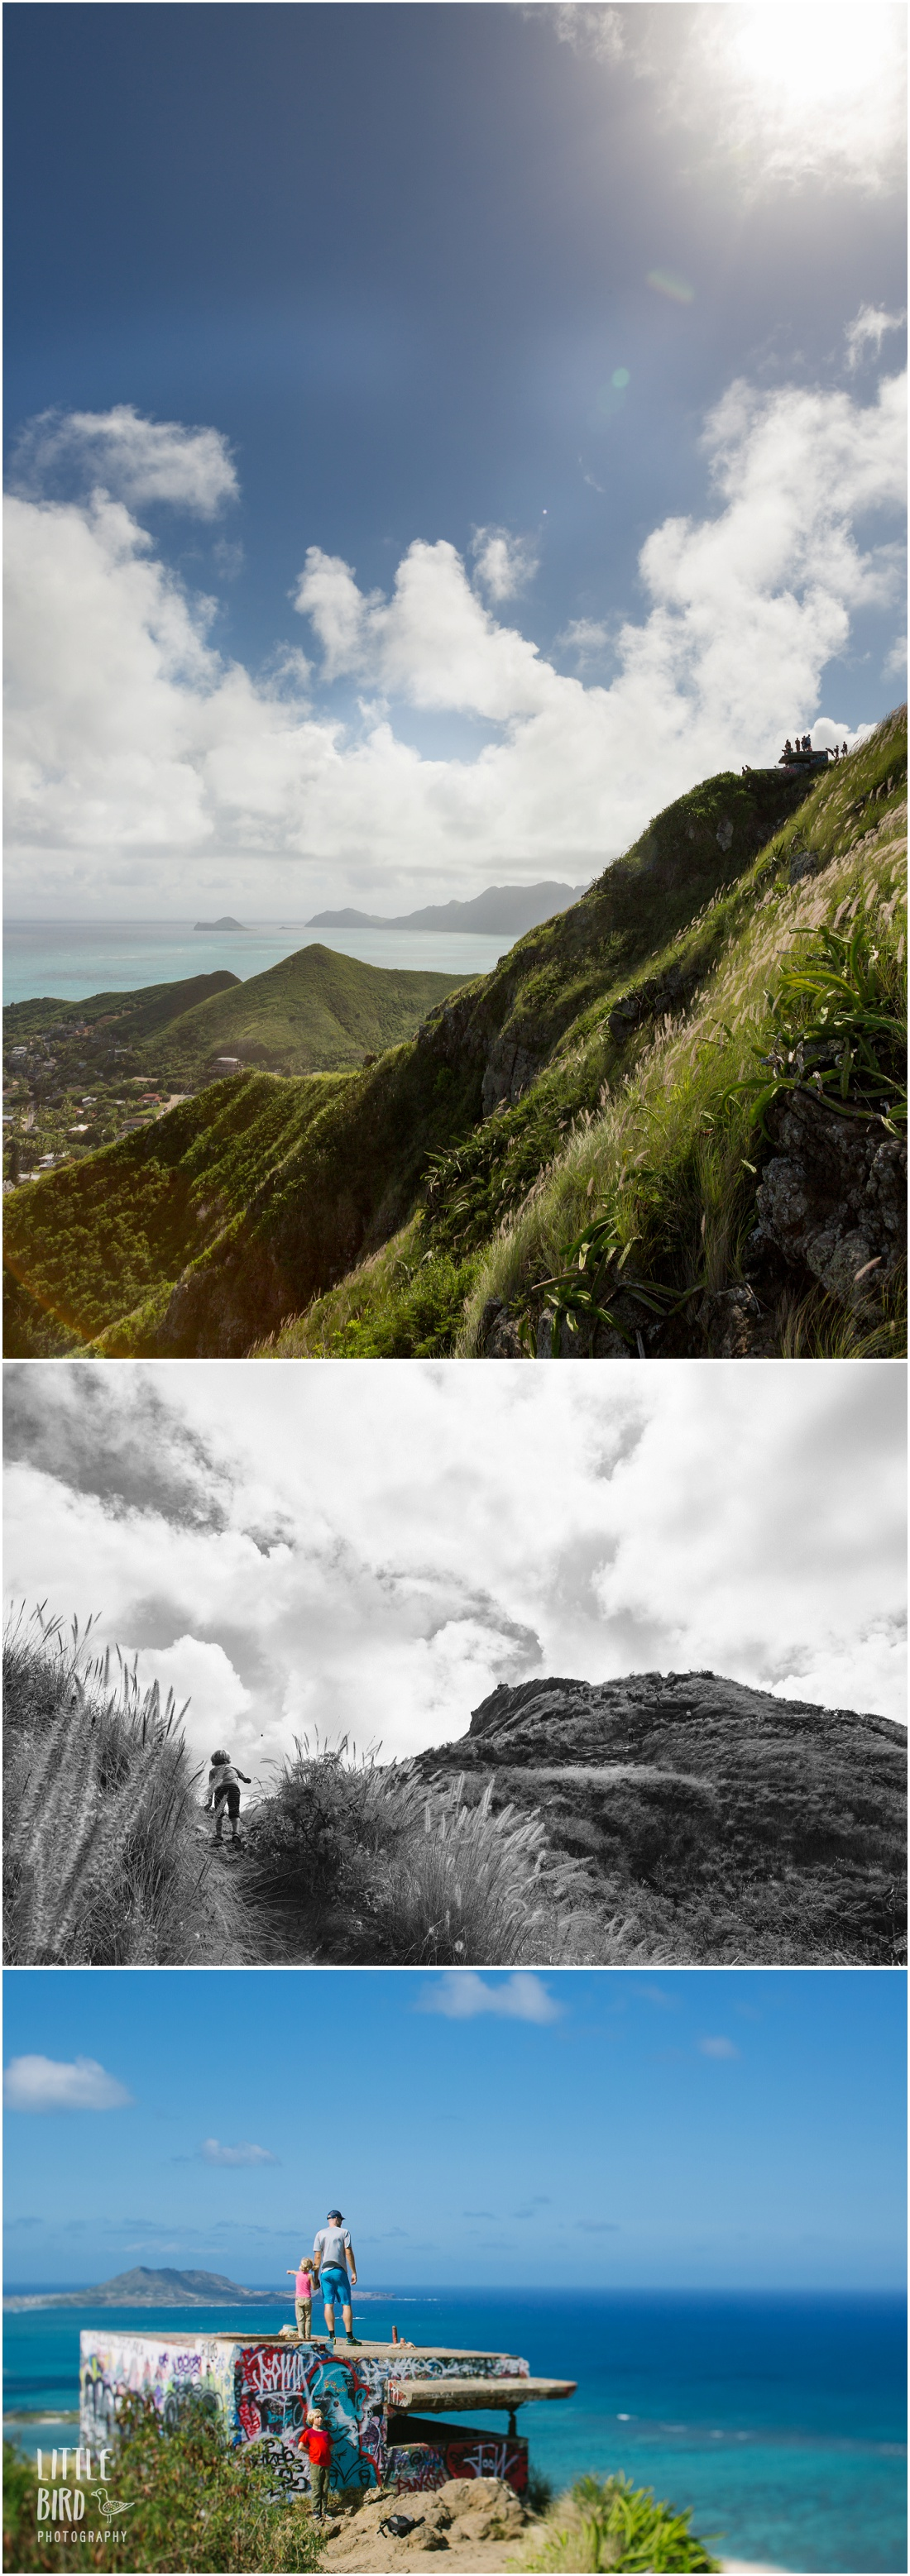 view from the first pillbox of lanikai pillbox trail